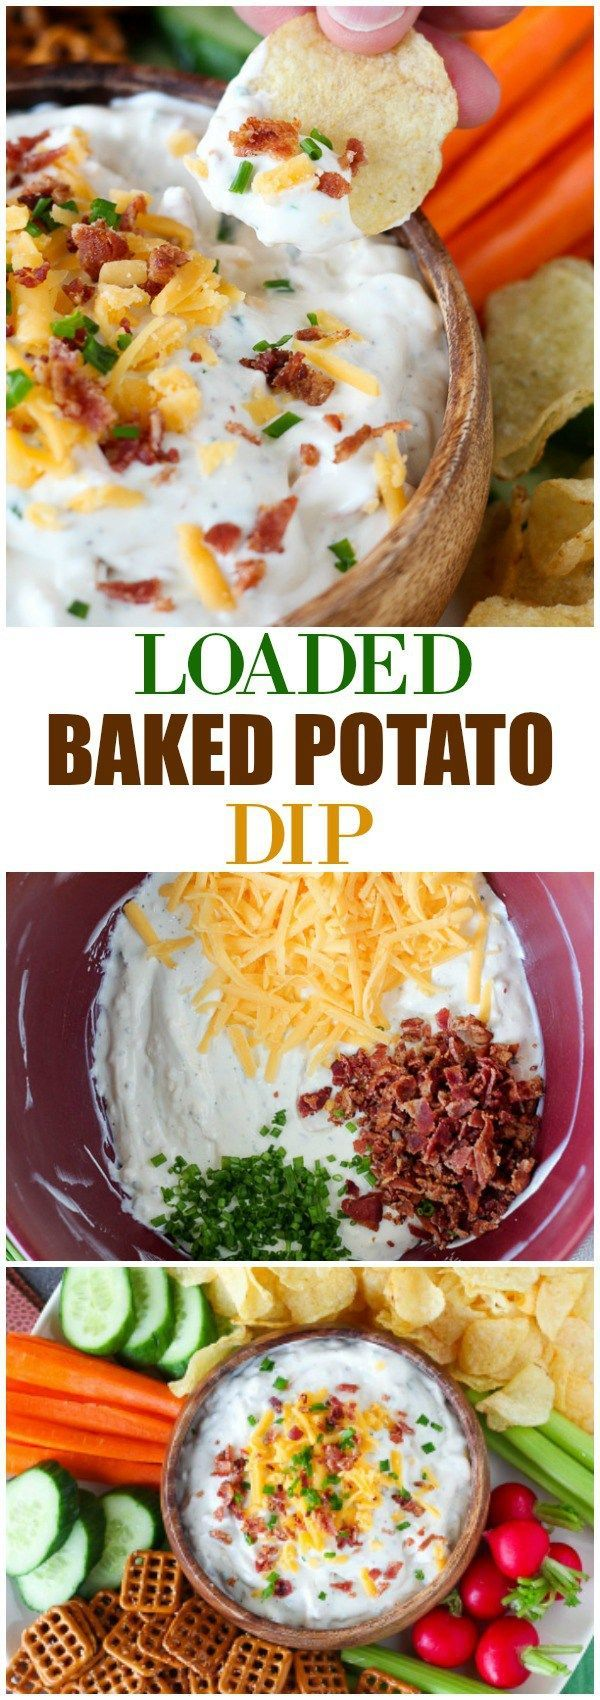 Loaded Baked Potato Dip - A simple and tasty dip filled with sour cream, cheese, bacon, chives and ranch dressing mix. A crowd-pleasing favorite! @capecodchips @snydershanover #ad #TheNewFanFavorites